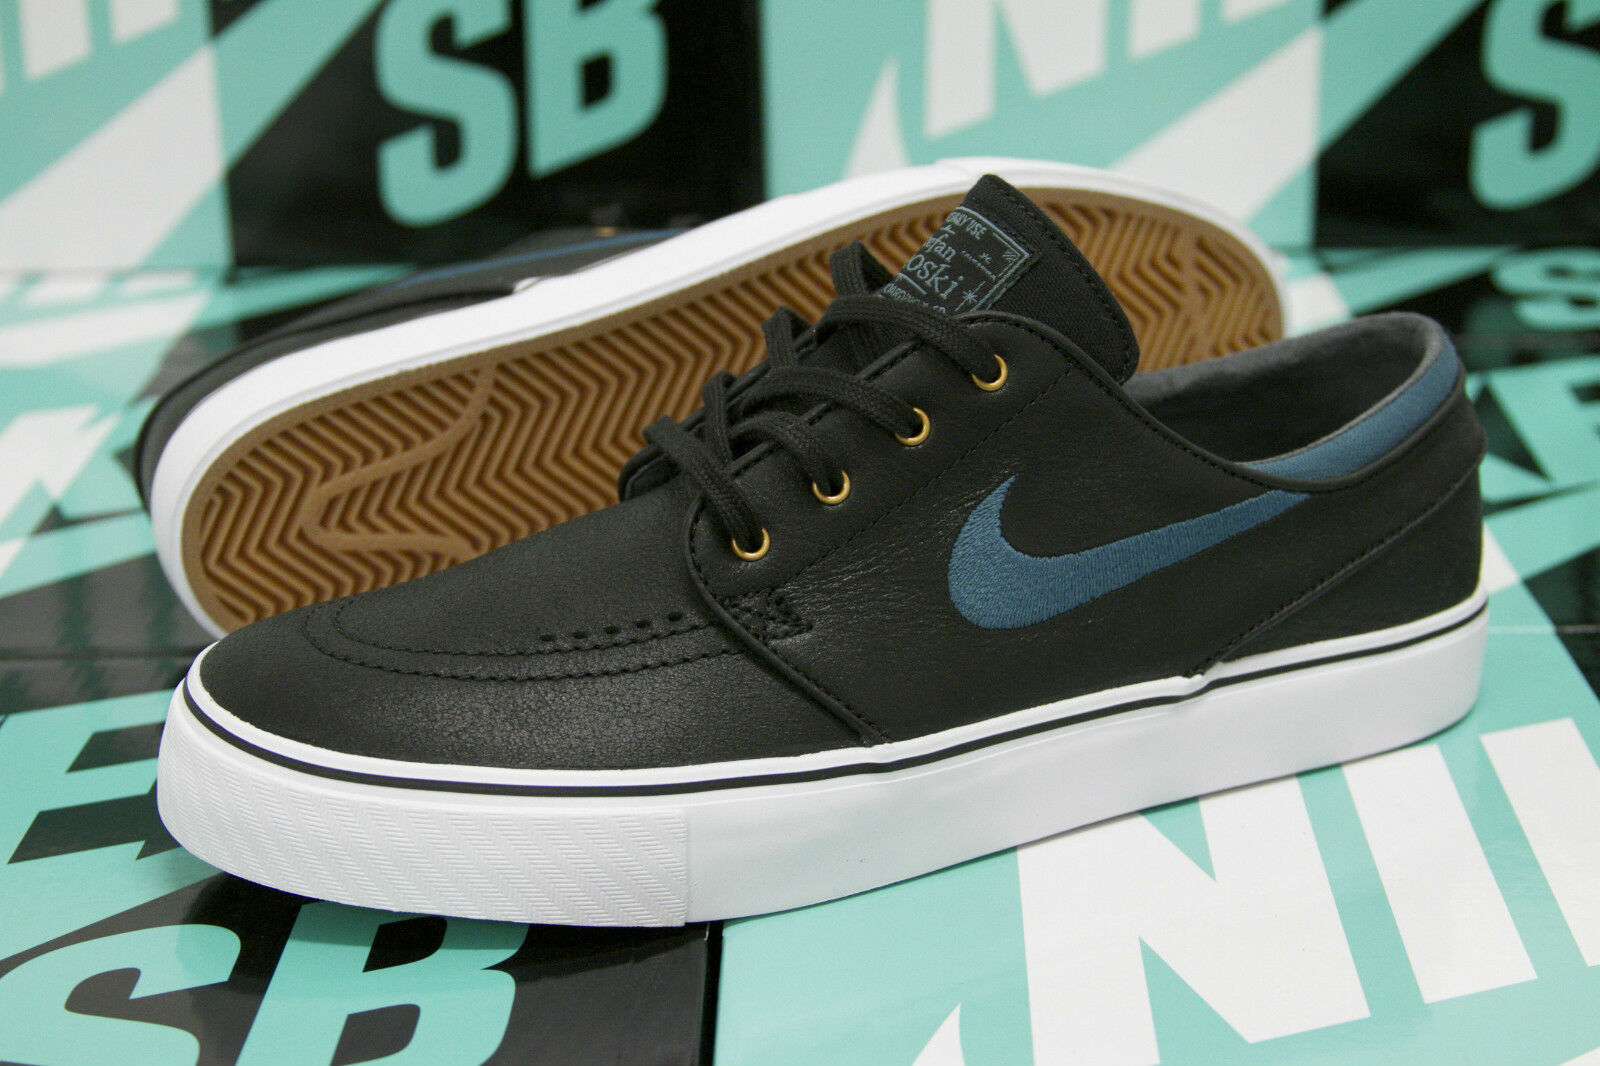 Nike SB Zoom Stefan Janoski Janoski Janoski Leather BLACK   NIGHT FACTOR 375361 007 DS SZ 8.5 1cd505